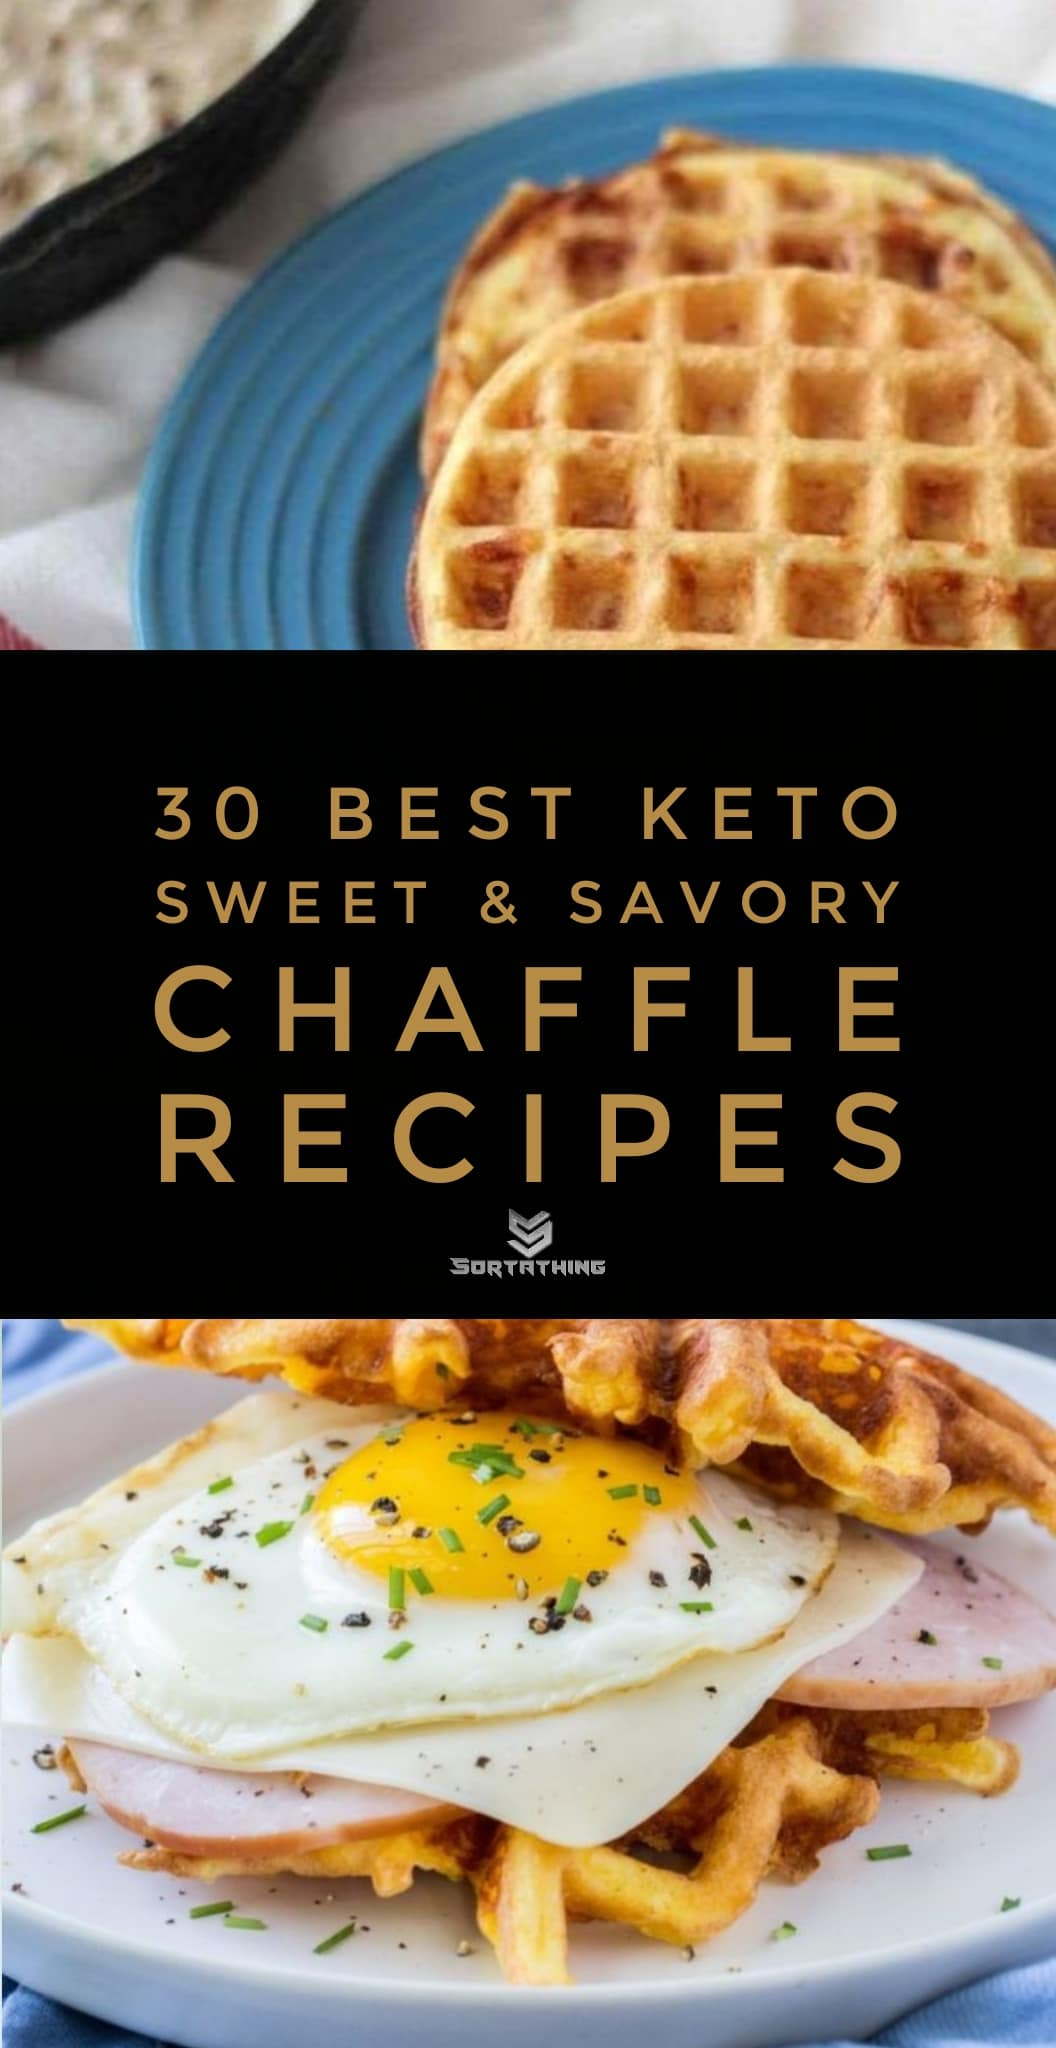 Sausage Gravy Chaffle and The Best Grain-Free Keto Chaffle Recipe